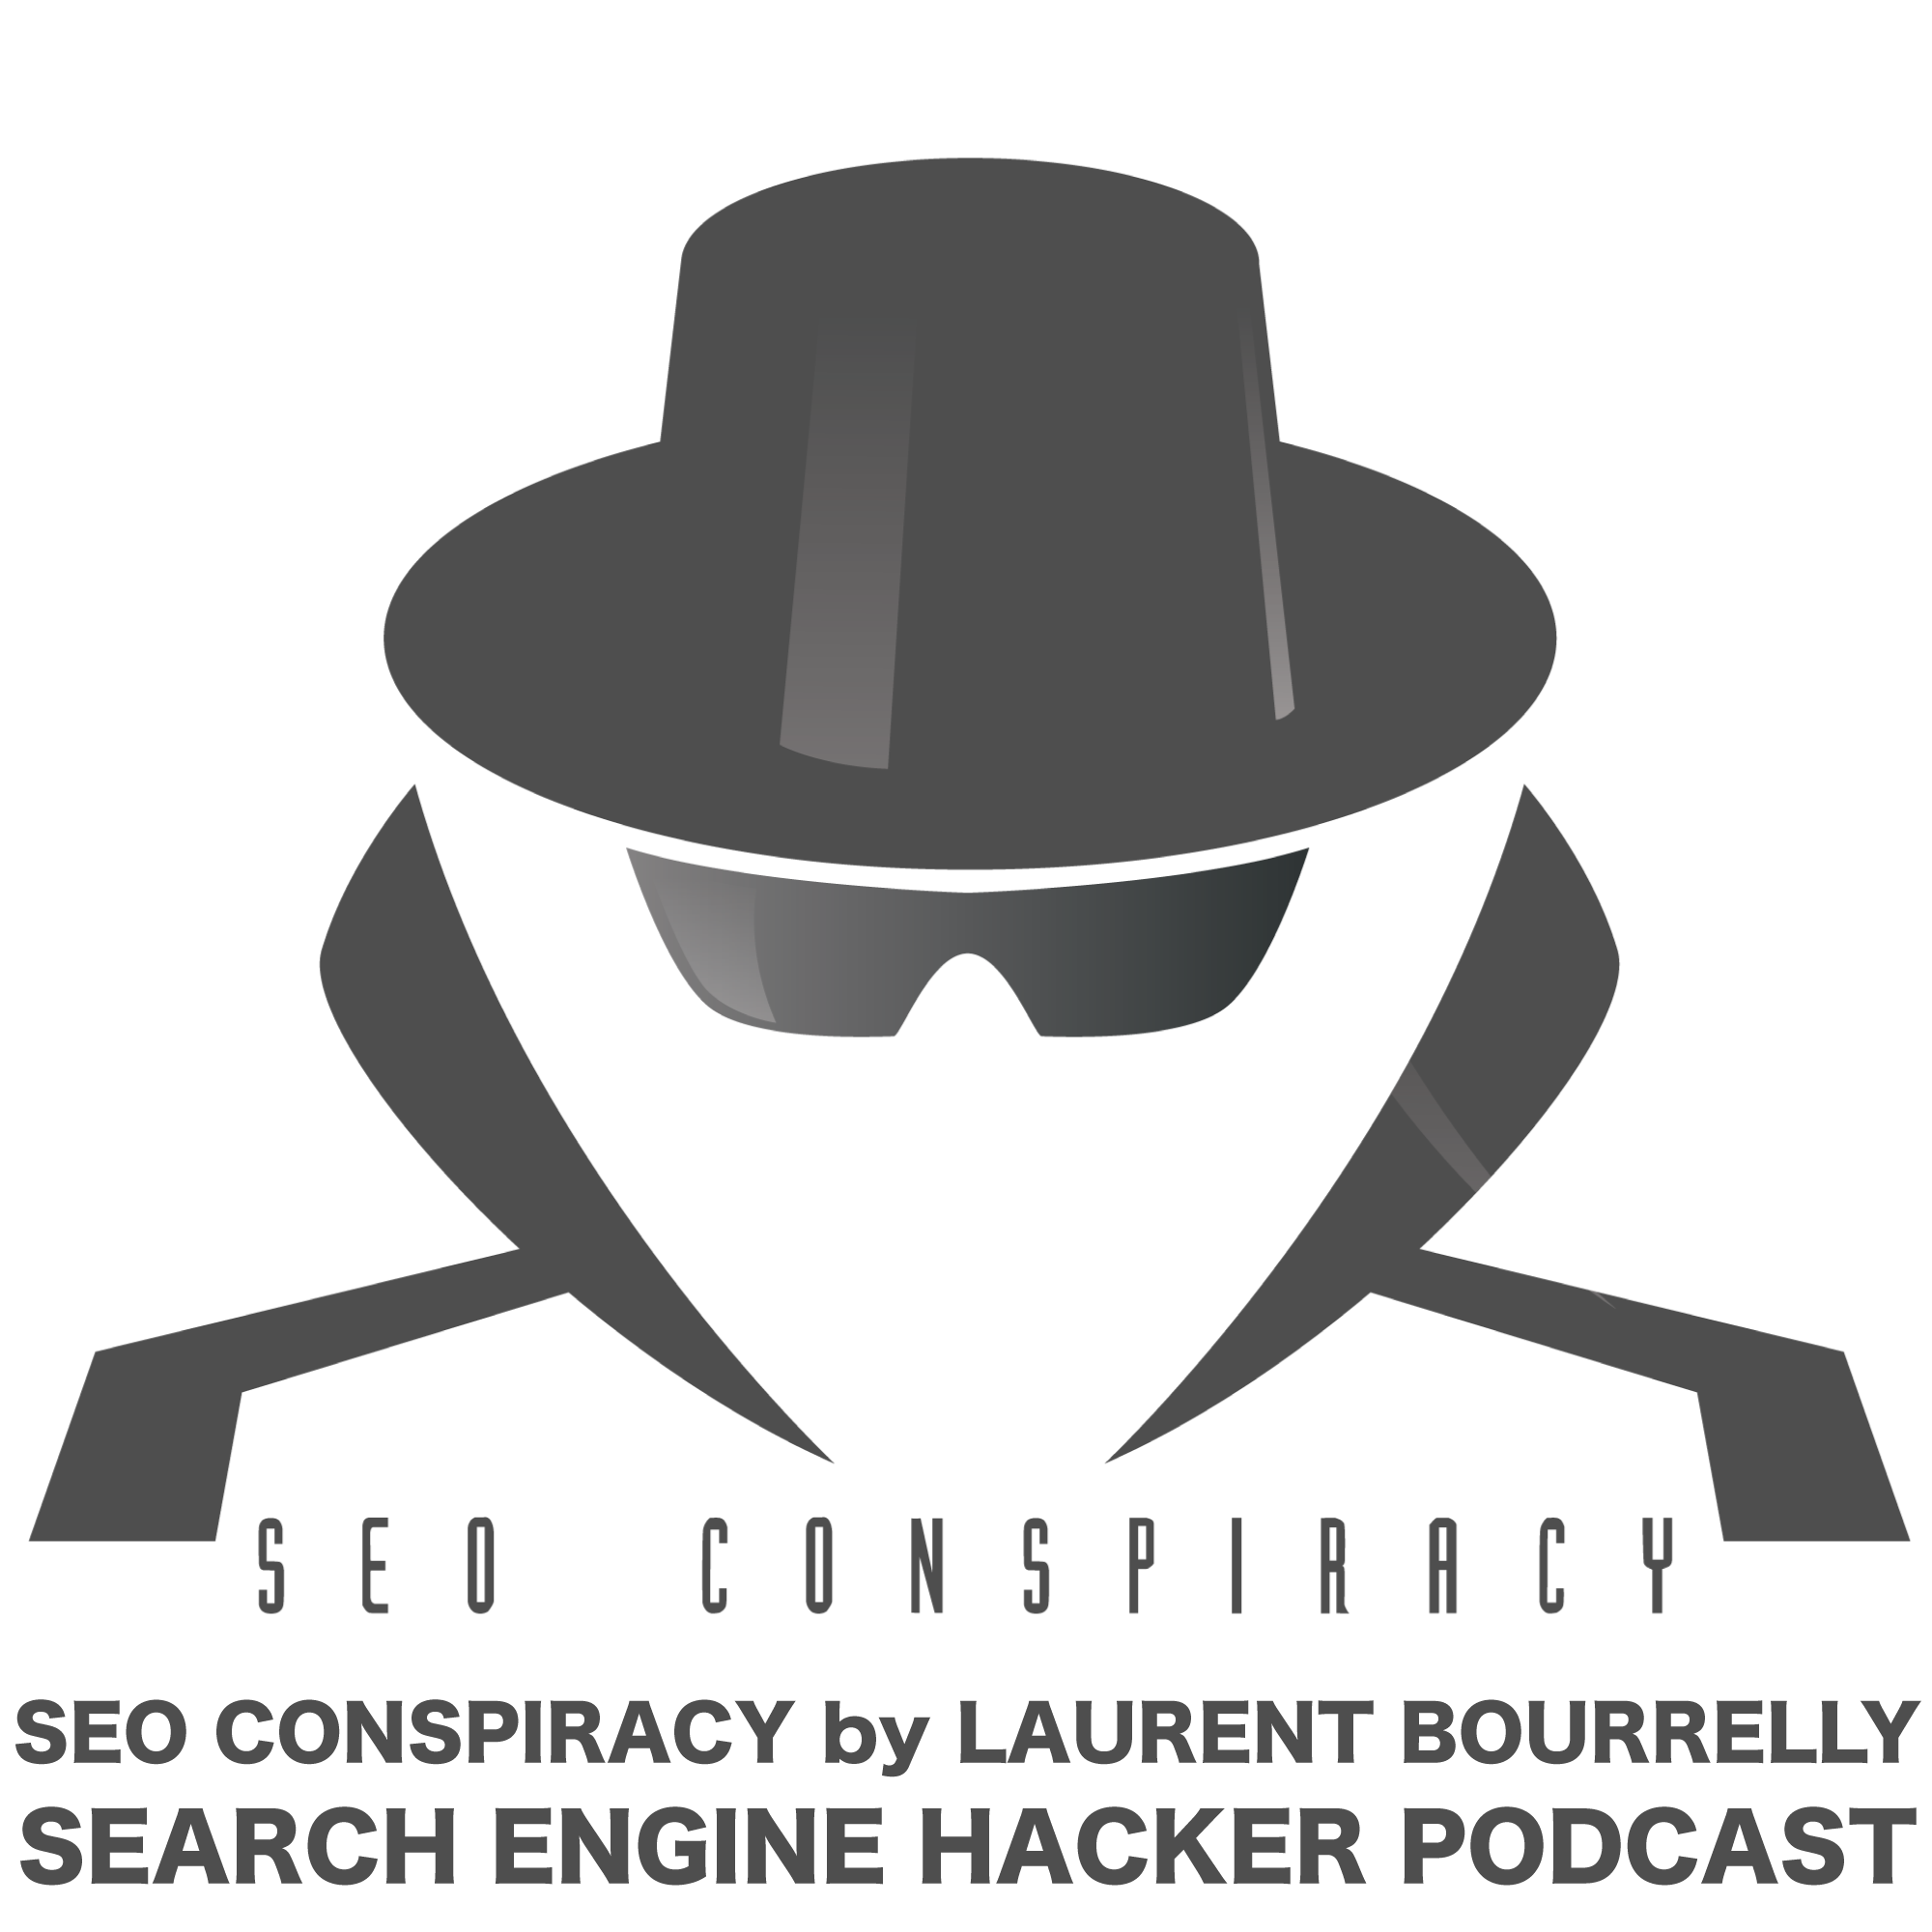 Negative SEO with backlinks blast